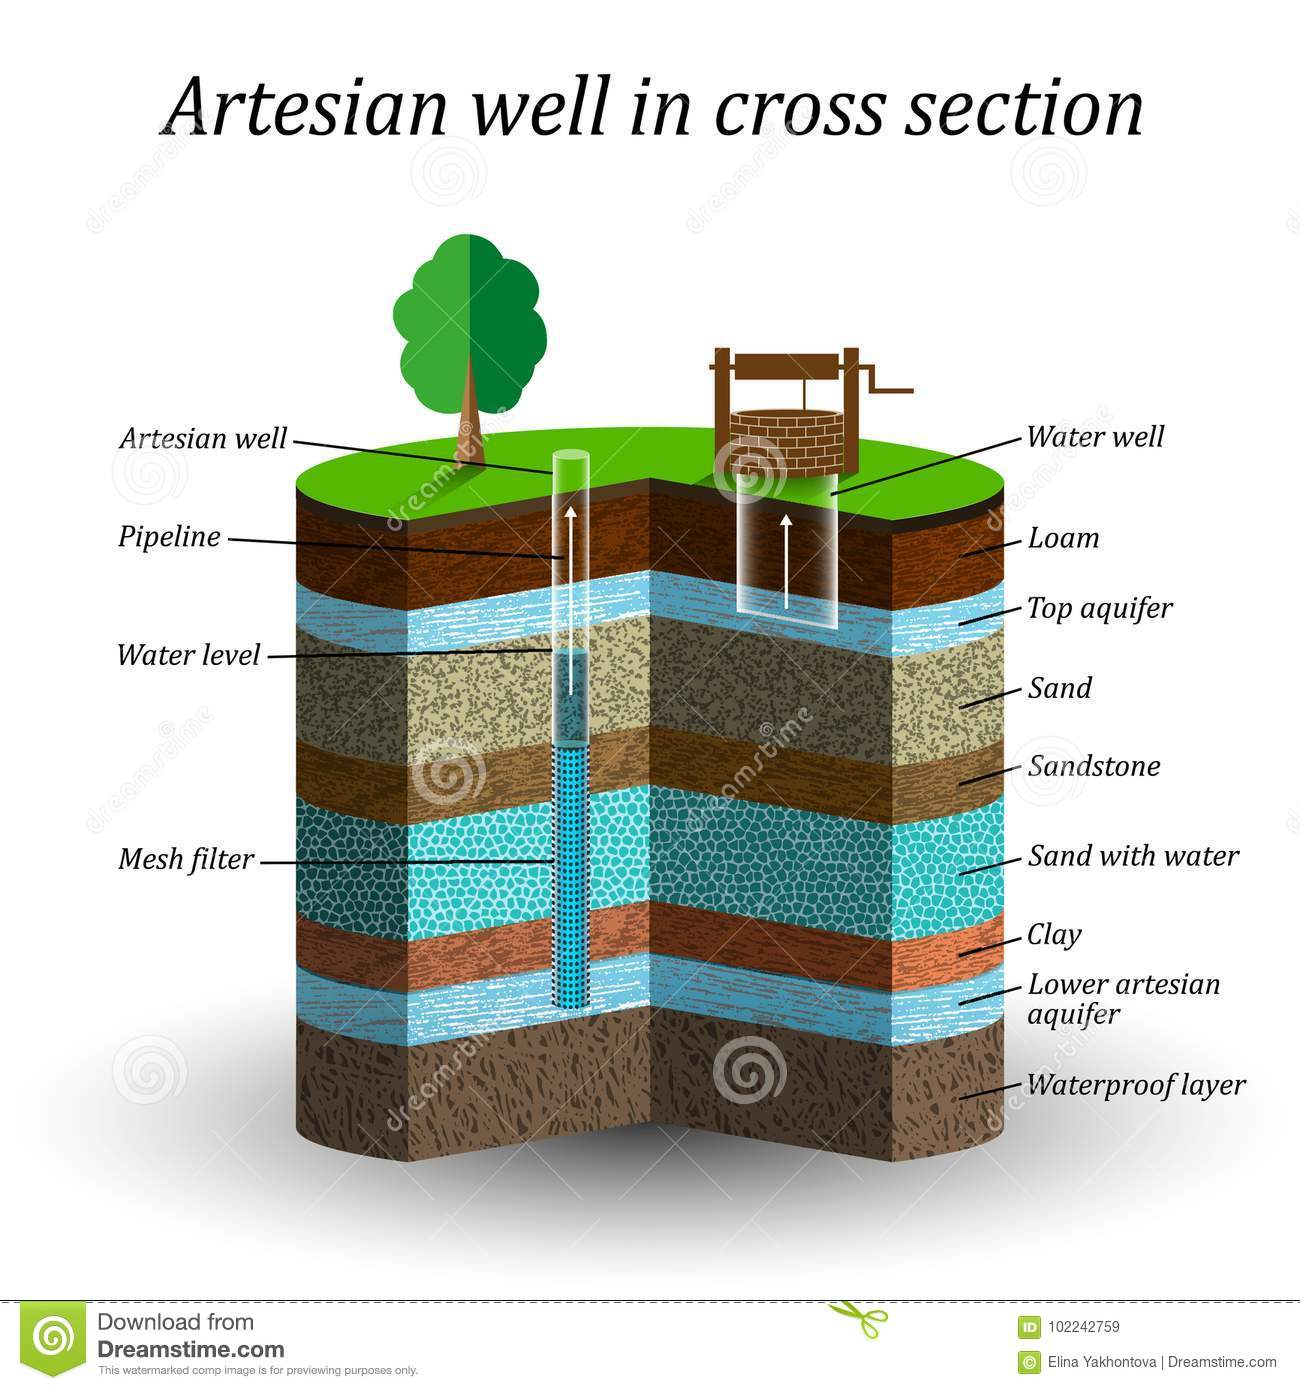 Artesian Water Well In Cross Section Schematic Education